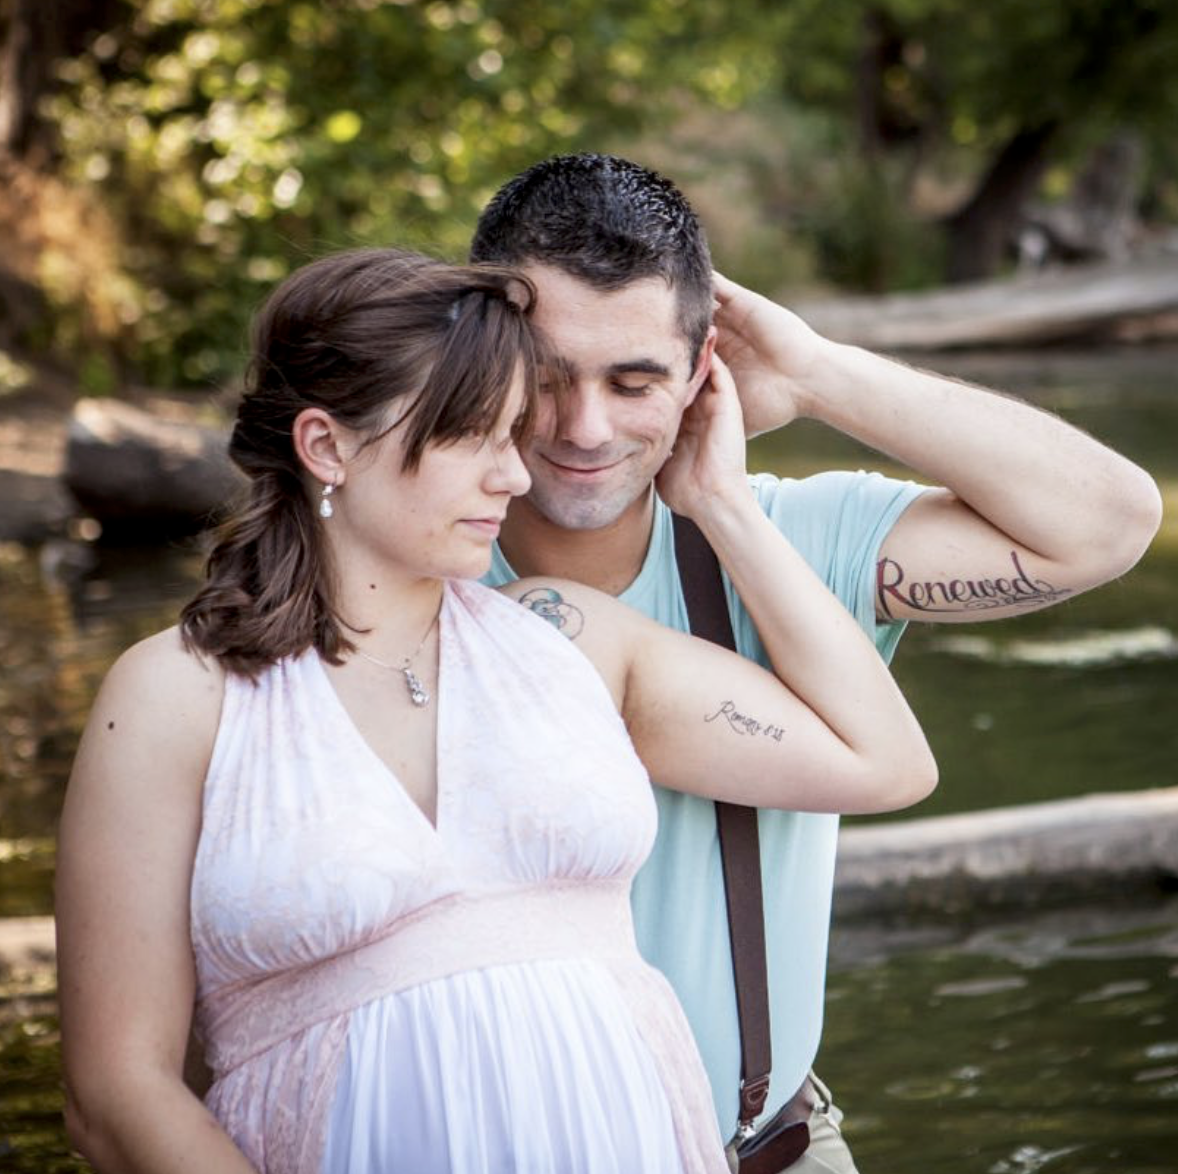 Reconciled Marriage and Pregnancy After Miscarriage